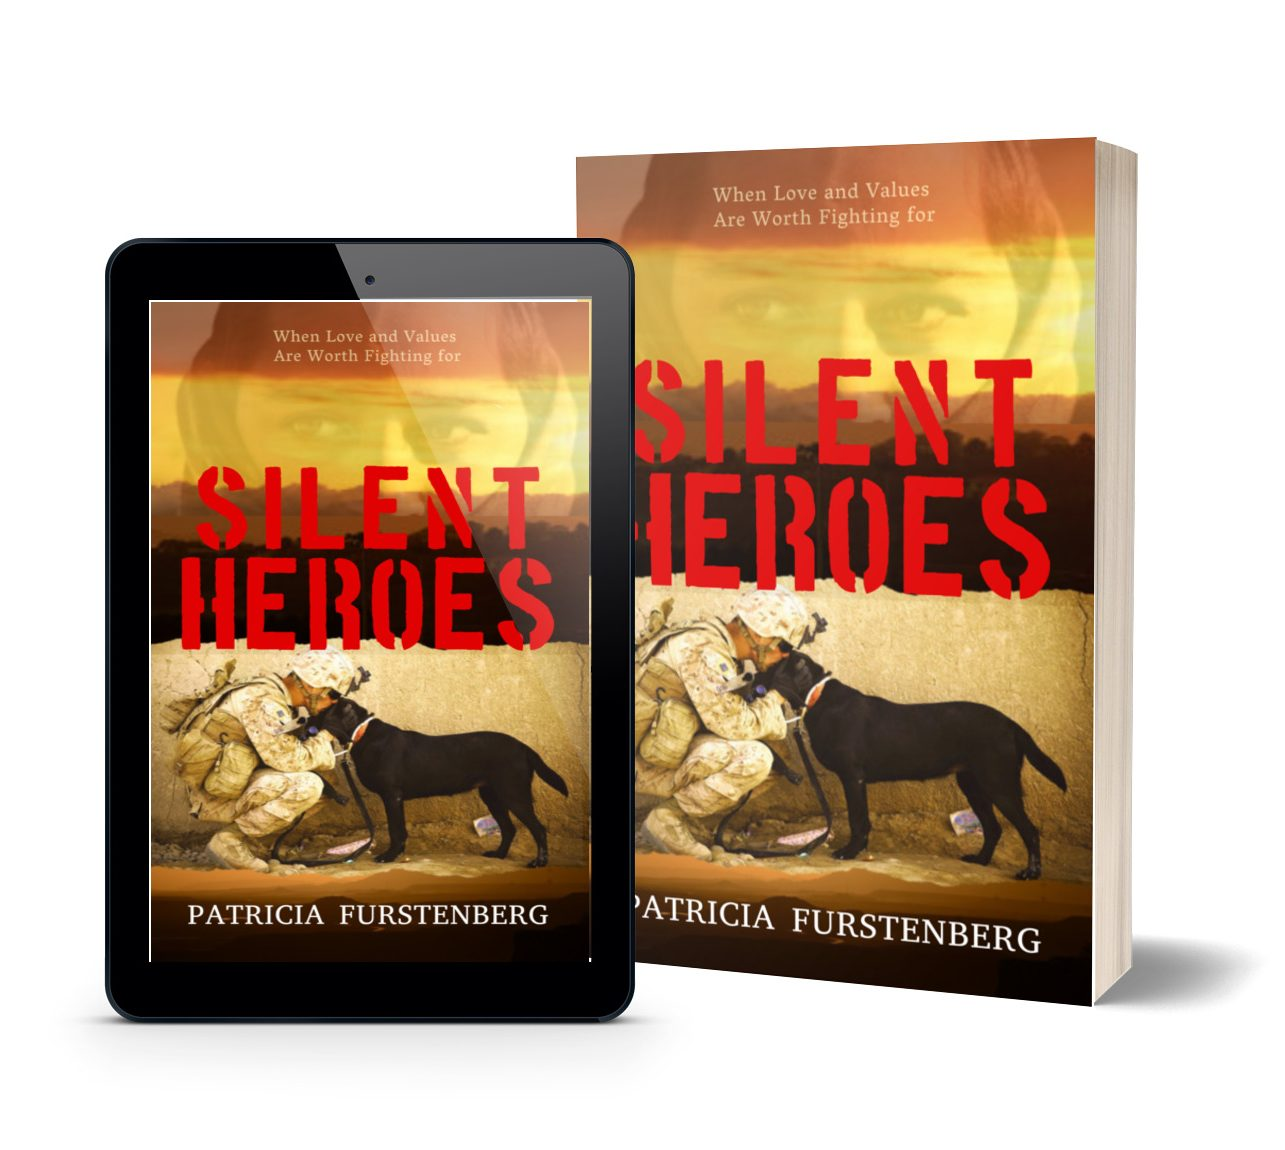 Silent Heroes by Patricia Furstenberg